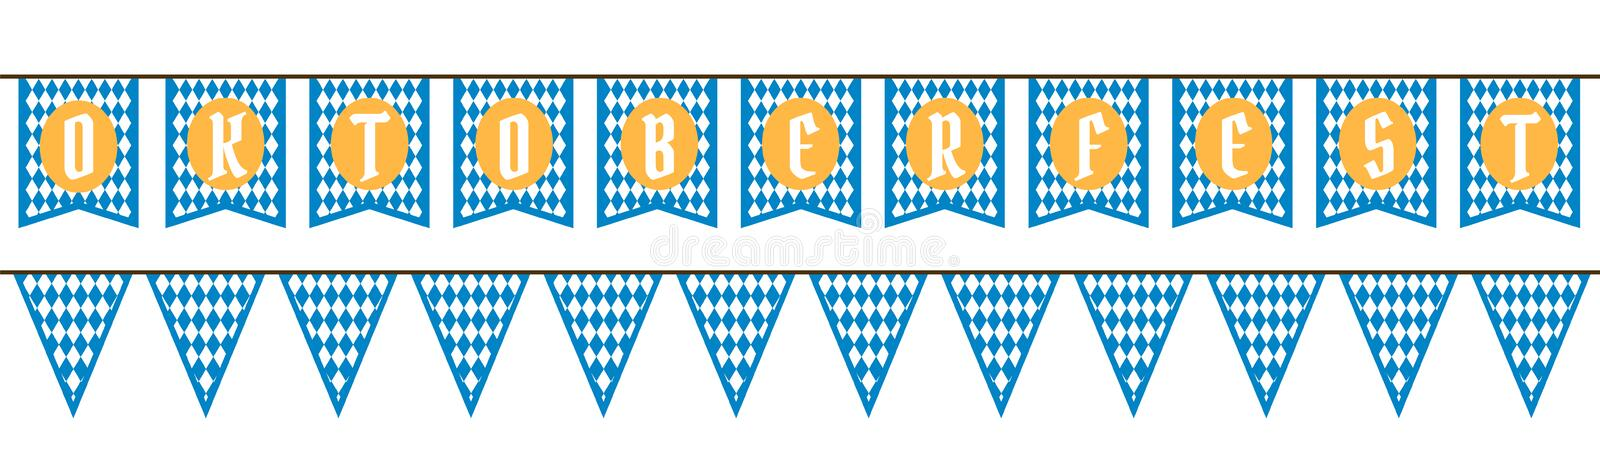 Bunting för Oktoberfest stock illustrationer